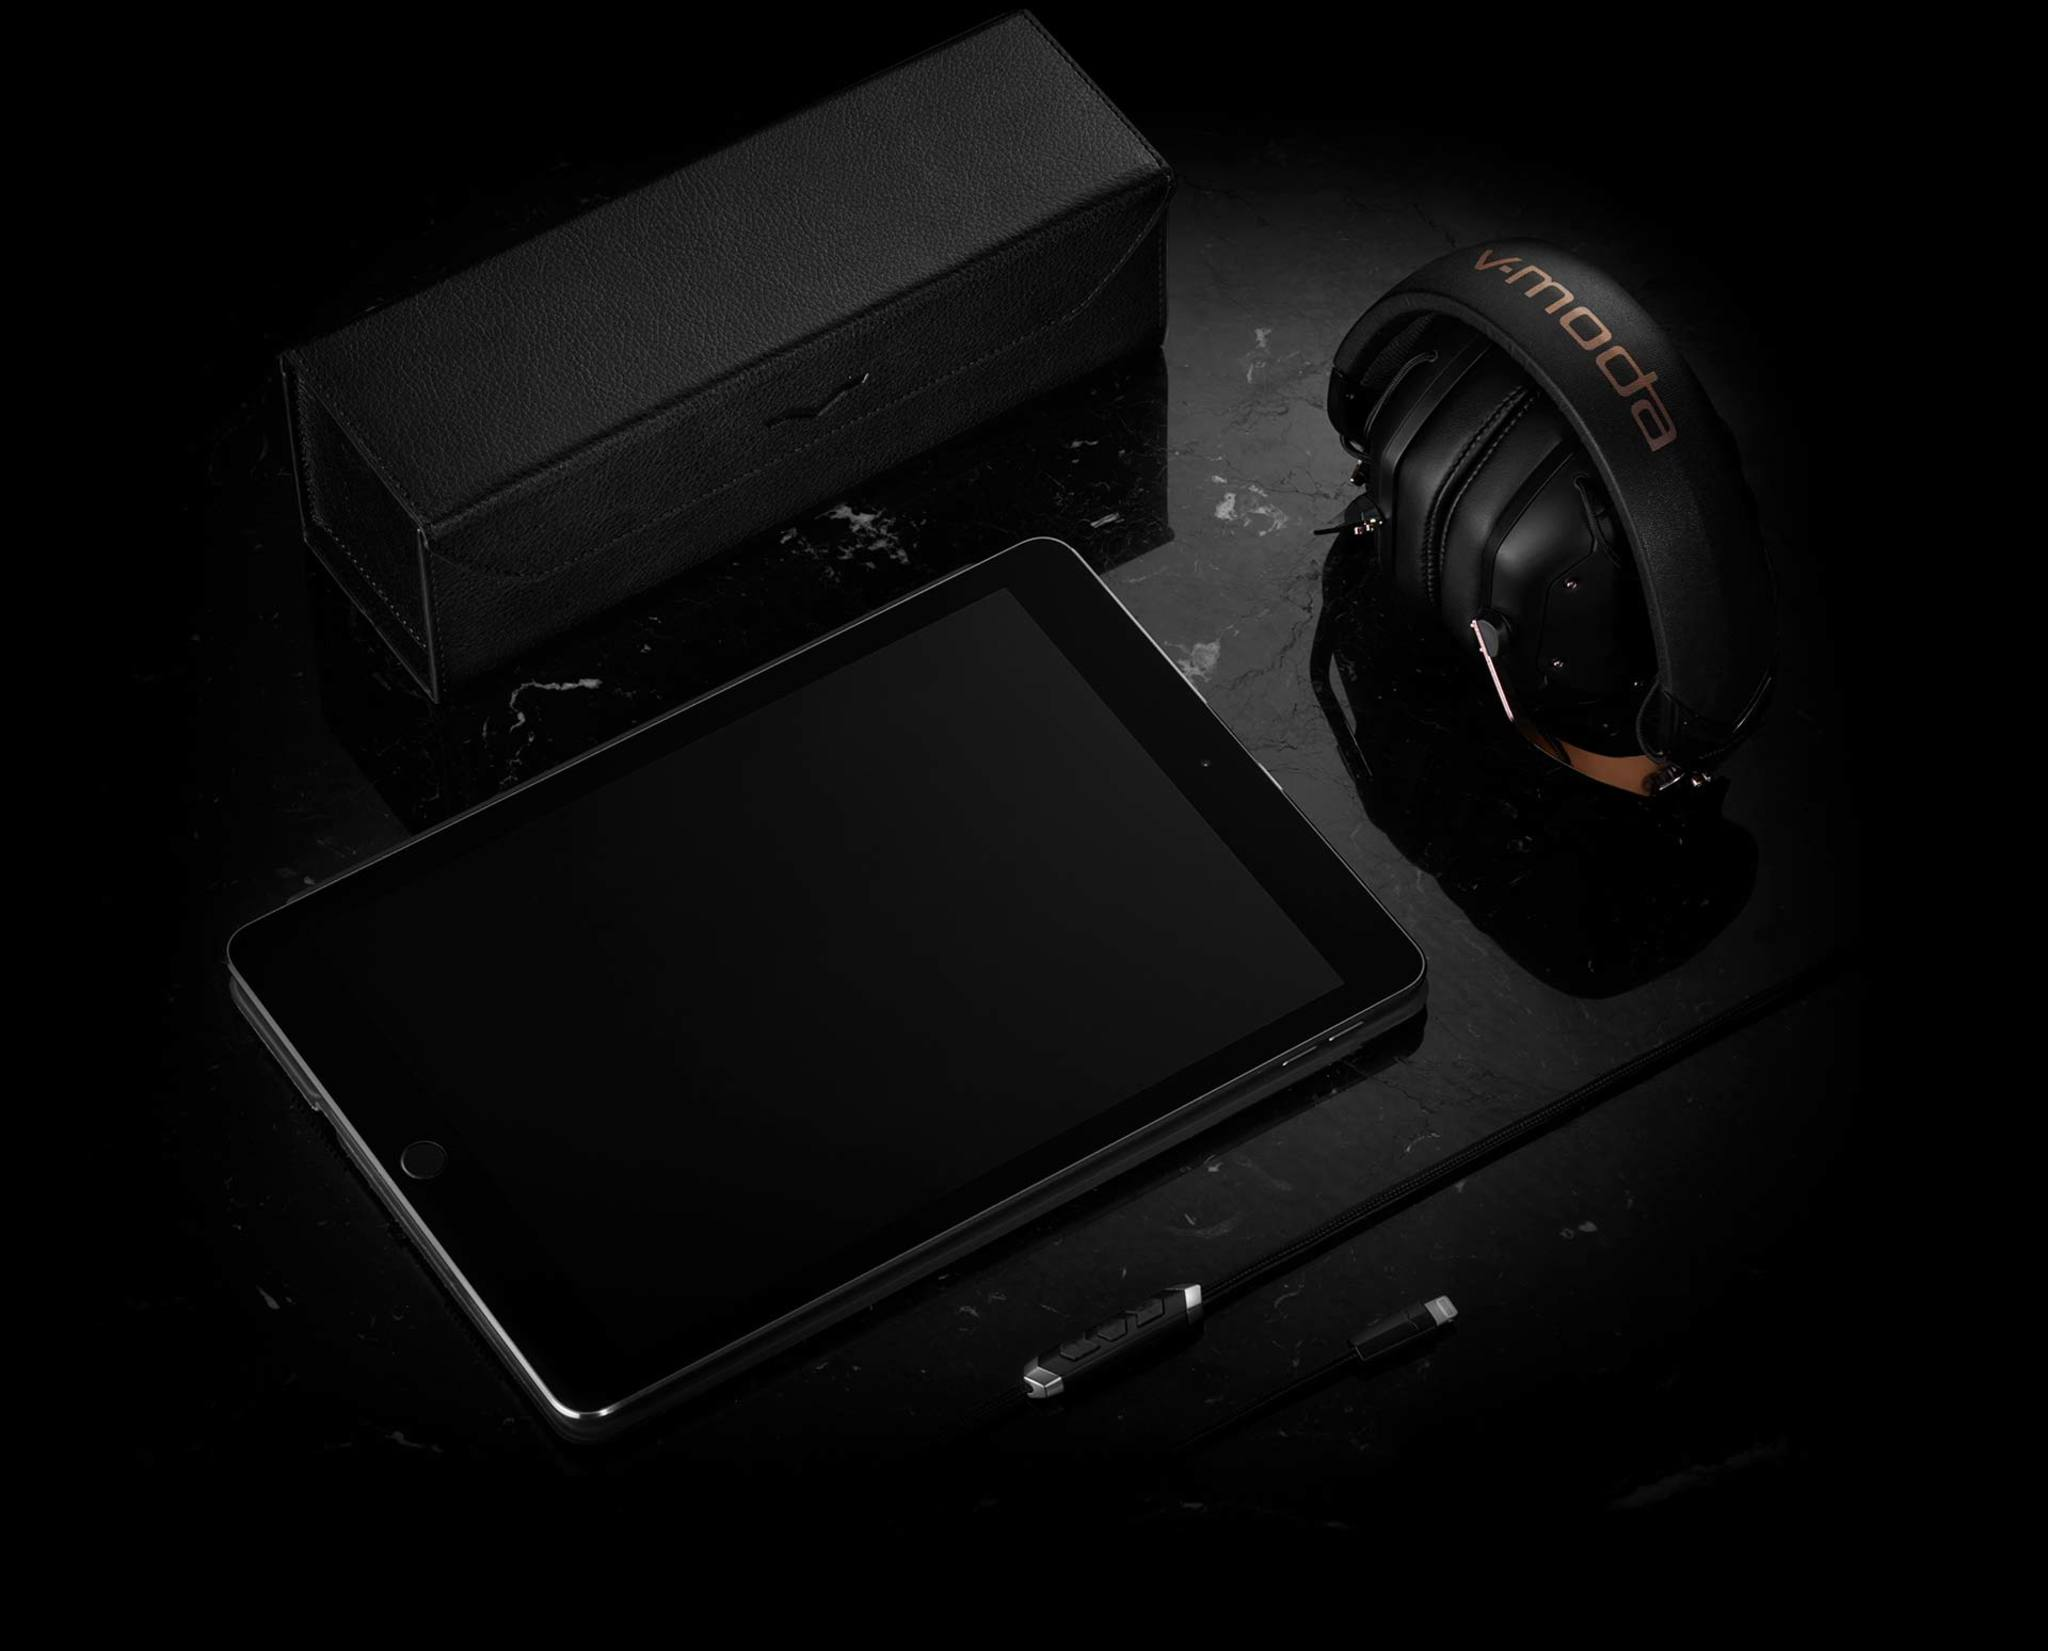 REMIX Bluetooth Speaker Leather Carry Case with headphones and iPad